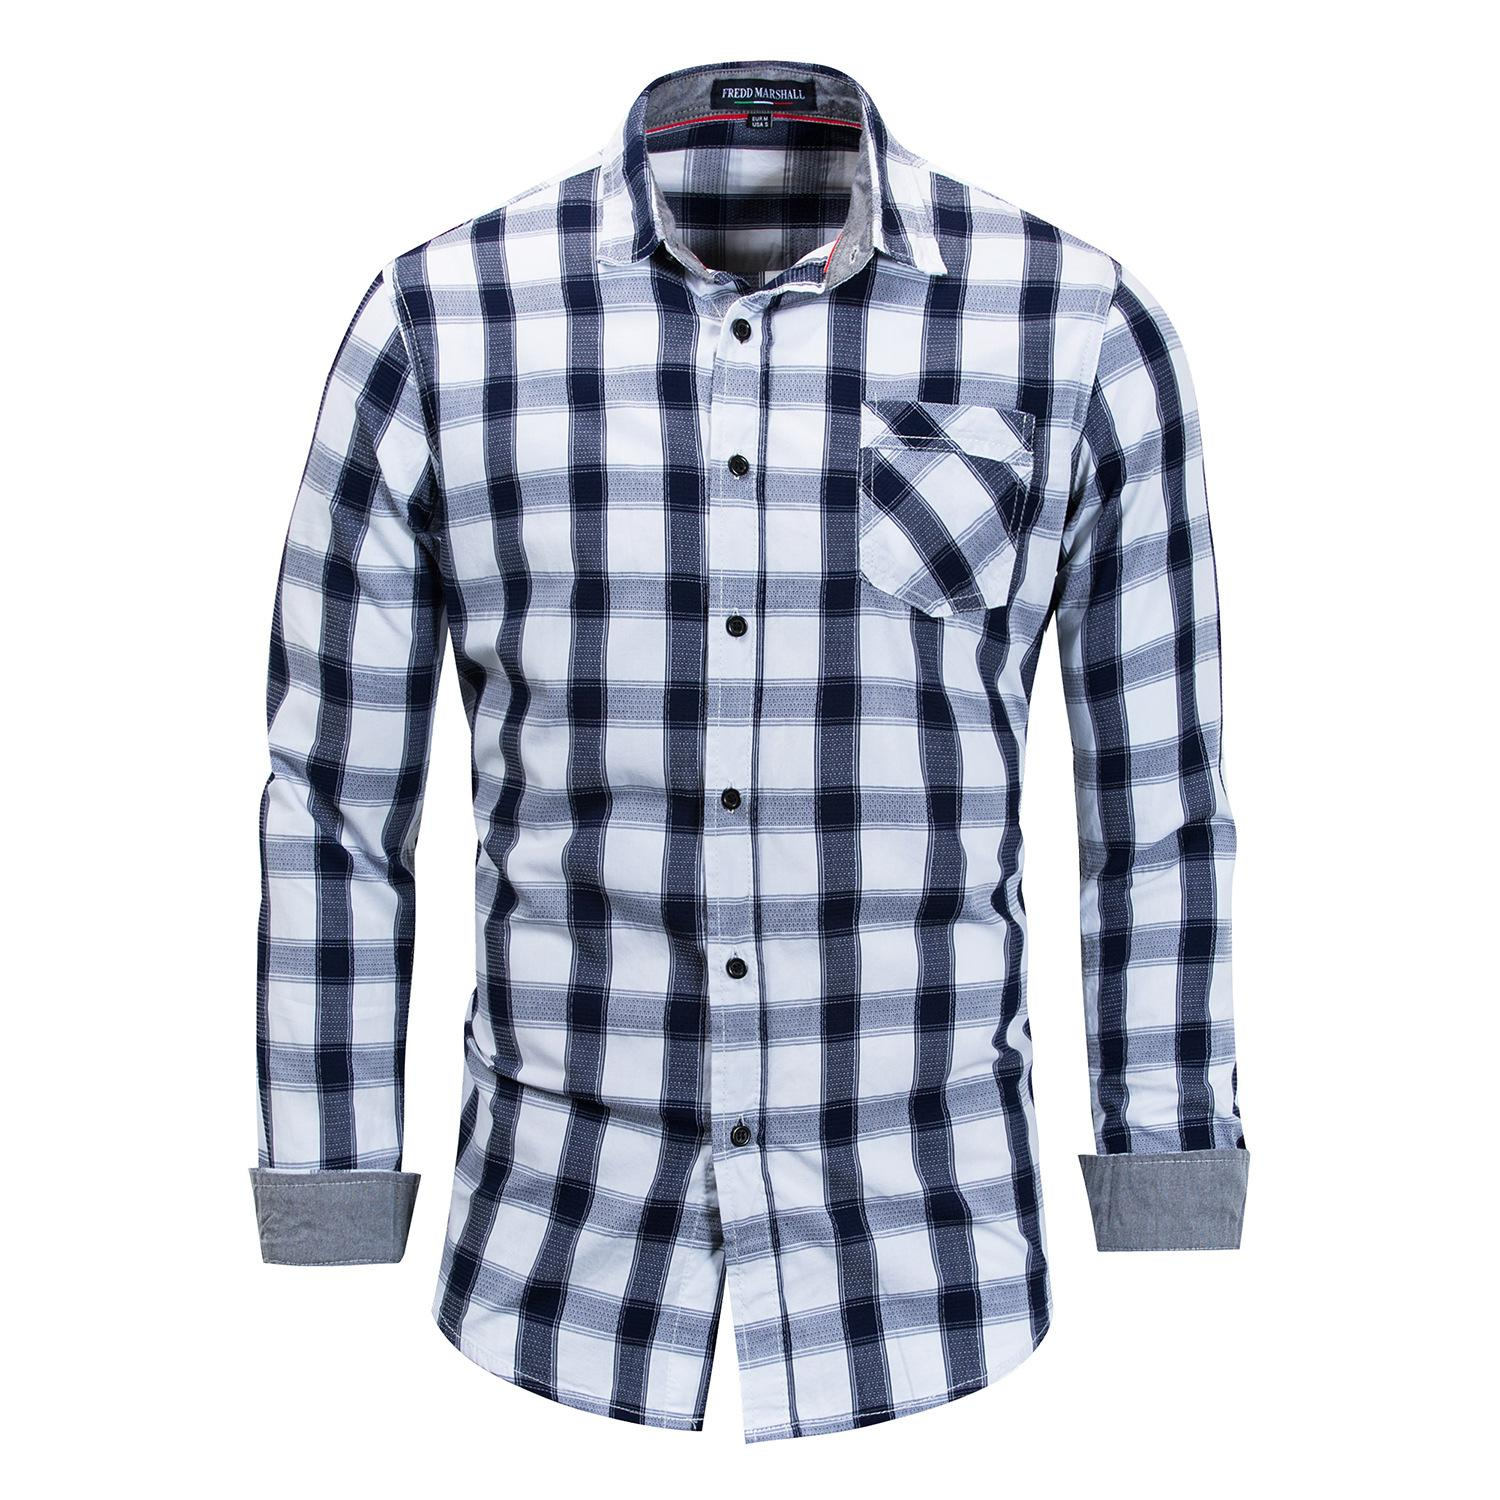 Cardigan Mens Shirts Long Sleeve Designer Shirt For Men Casual Tops